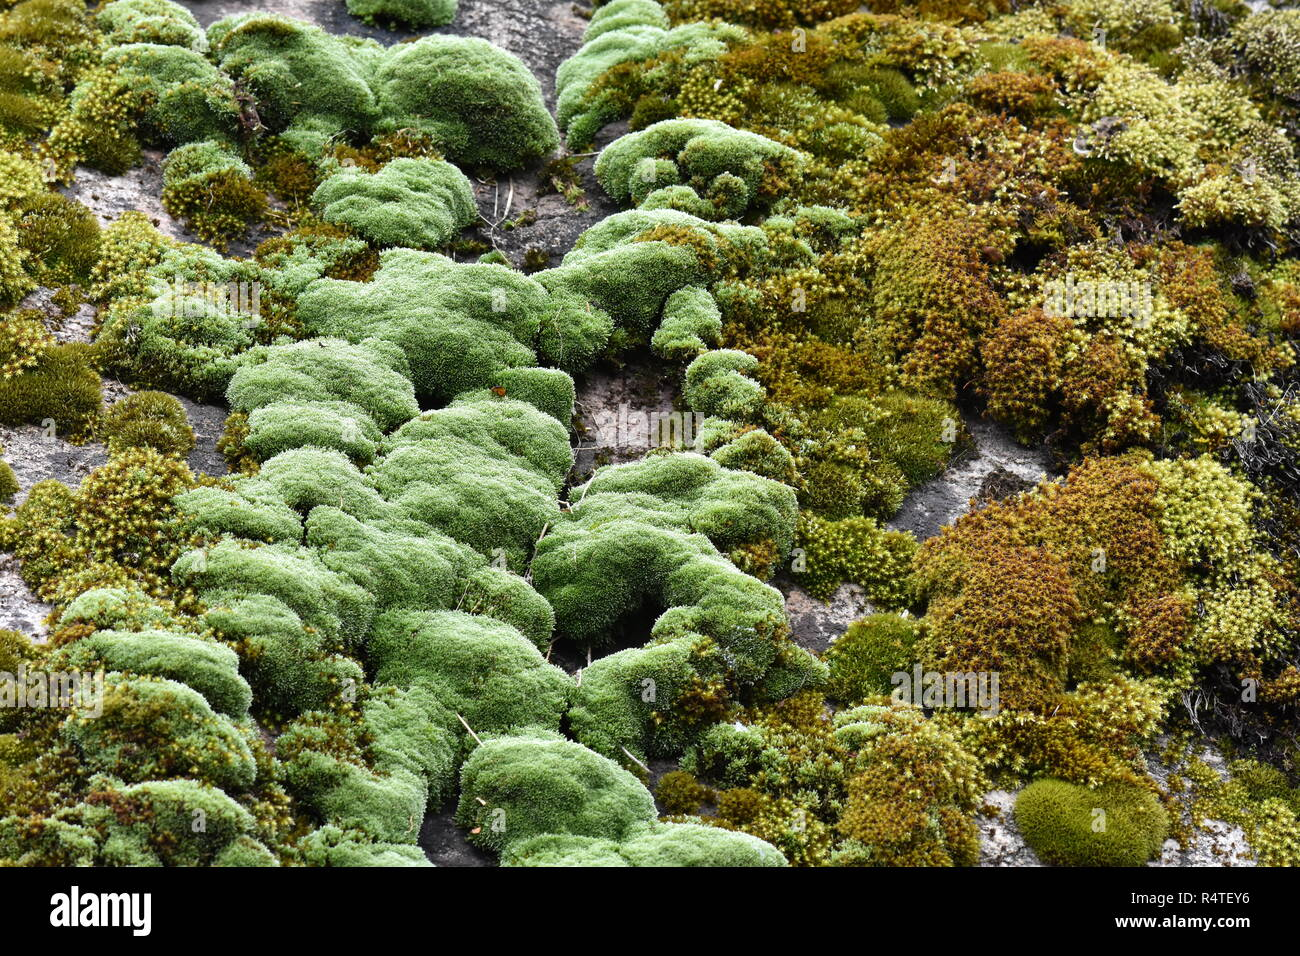 Different Mosses Growing Together On A Rock Stock Photo 226731994